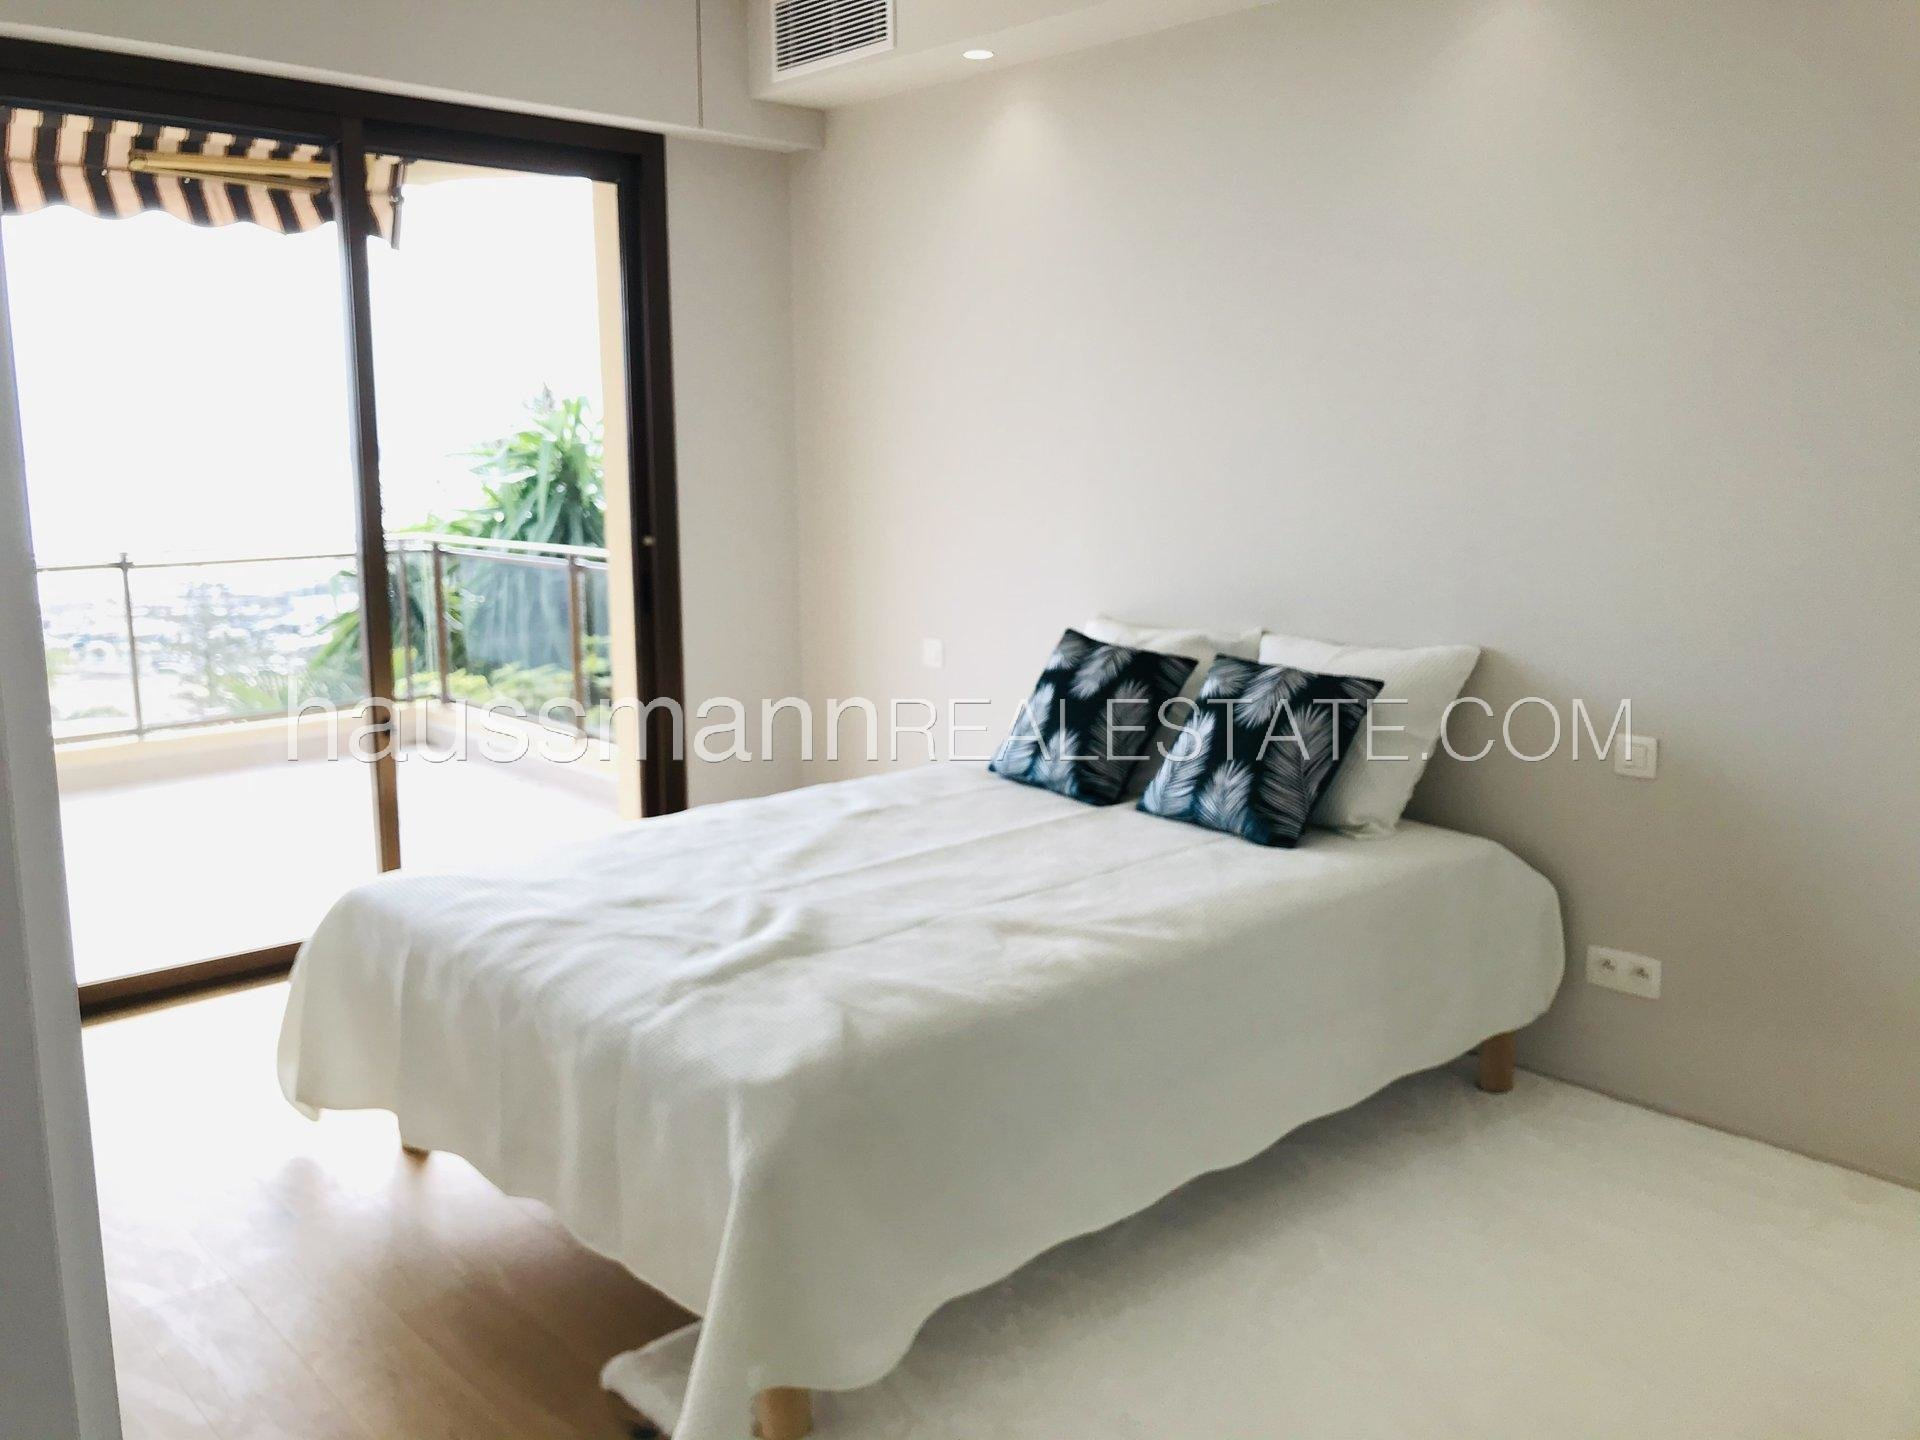 Buying Apartment Beaulieu-sur-Mer Cosy panoramic sea view apartment at only 2 steps from beaches and harbor